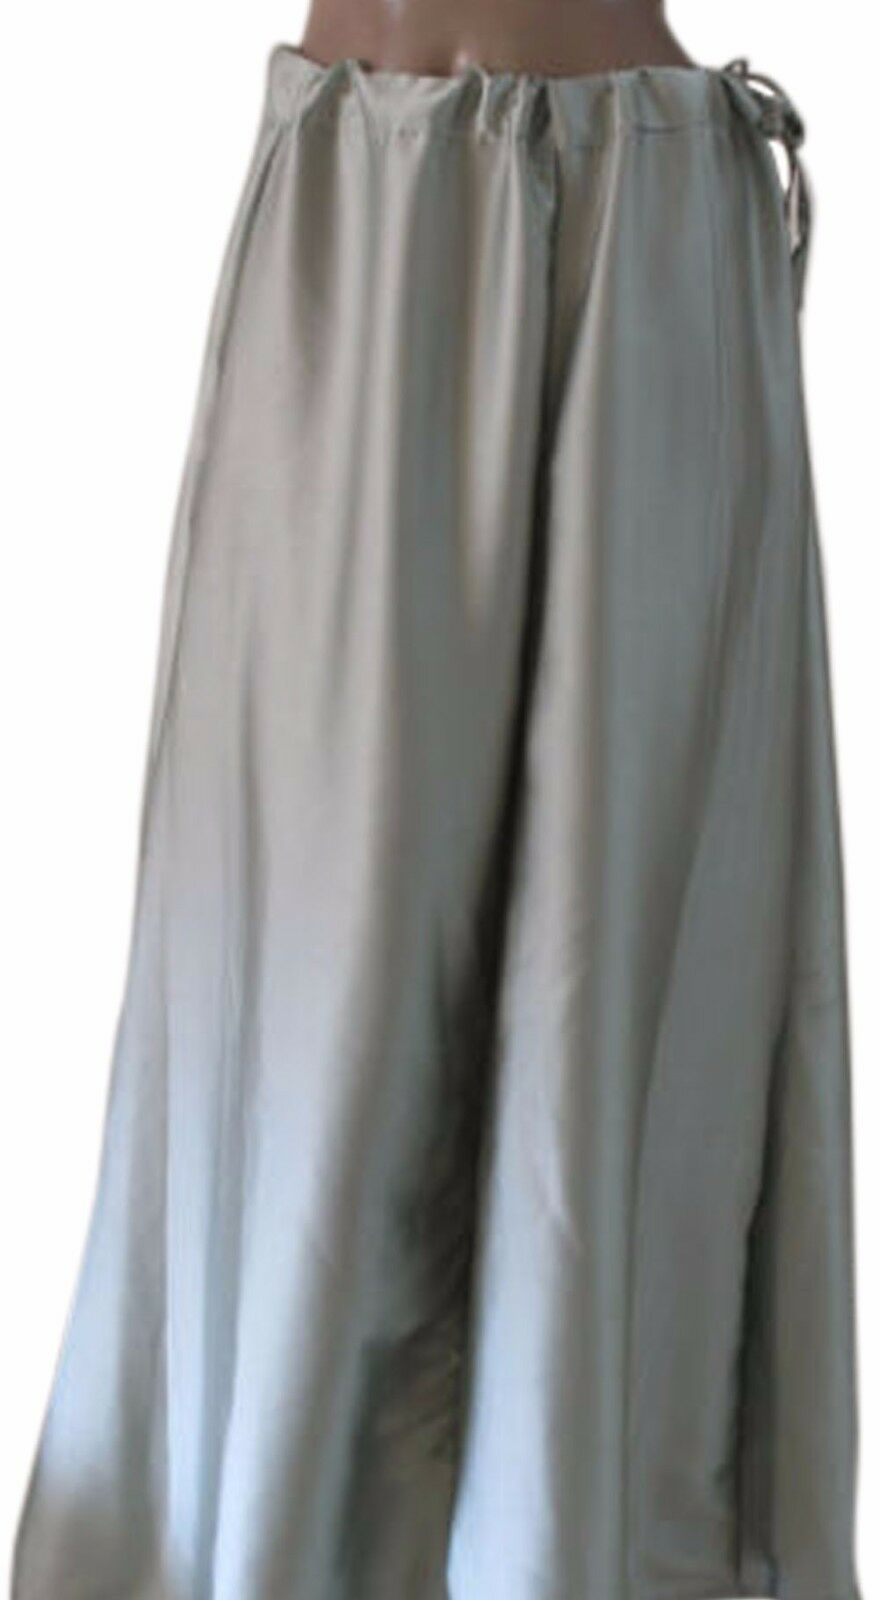 Grey  Luxurious soft satin skirt sari Petticoat Underskirt belly dancing  slip